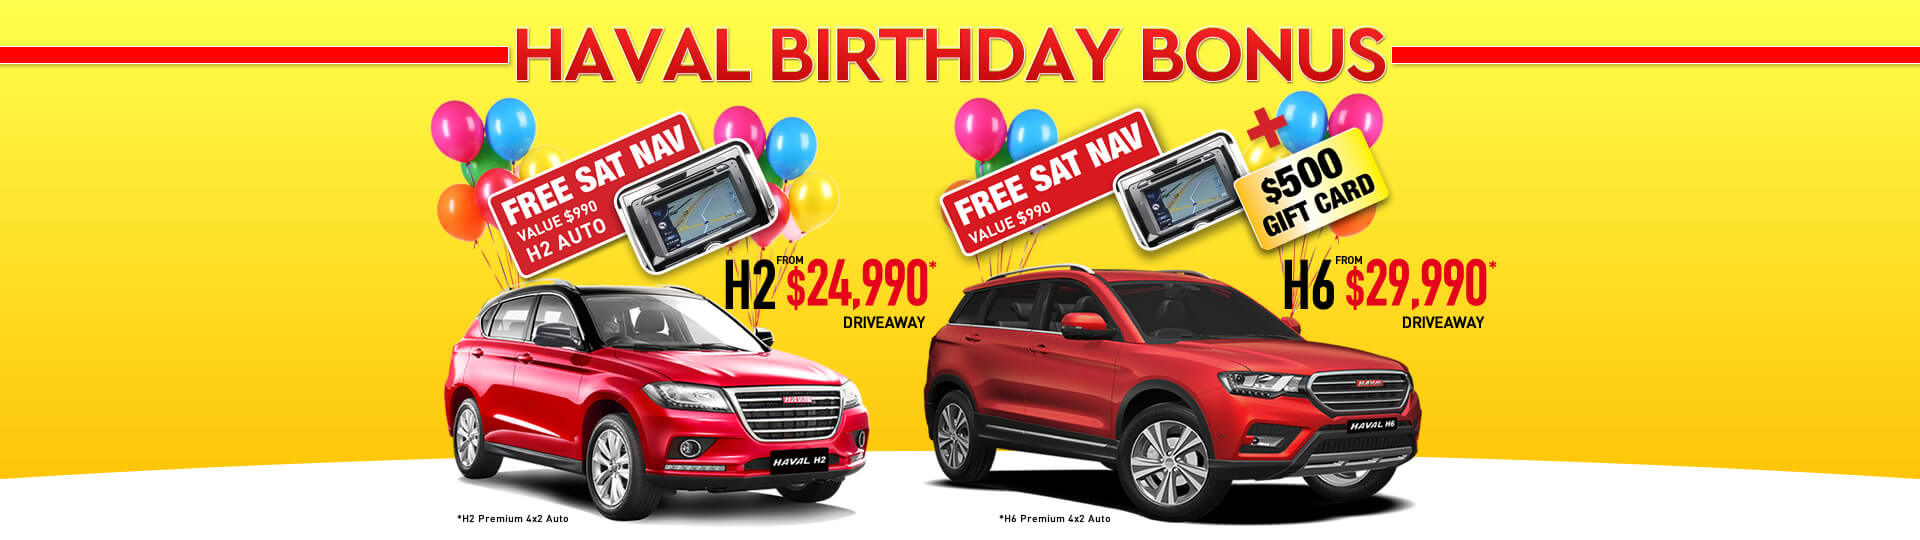 Haval Birthday Bonus